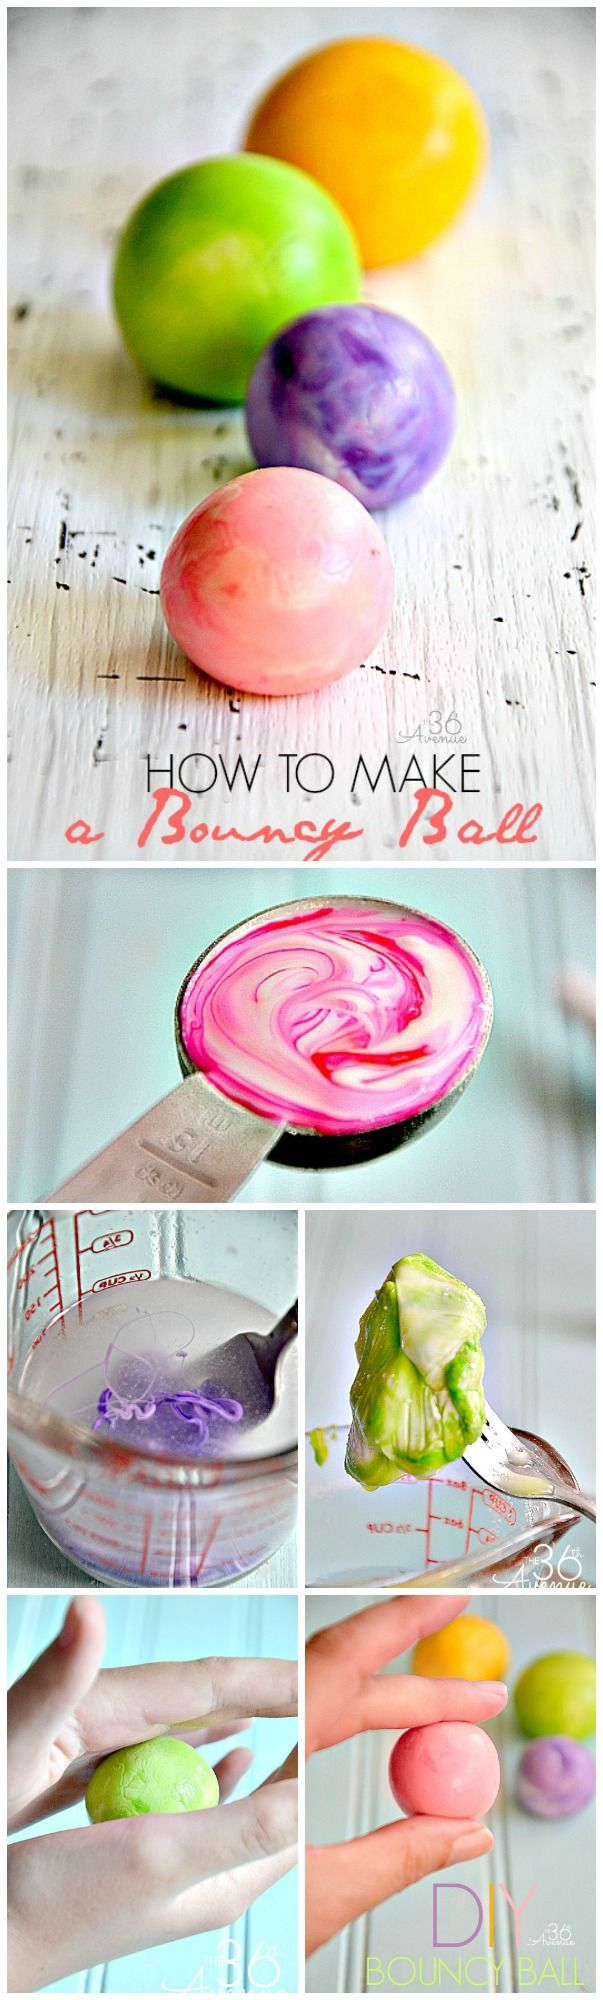 How to make a bouncy ball! Kid's favorite!